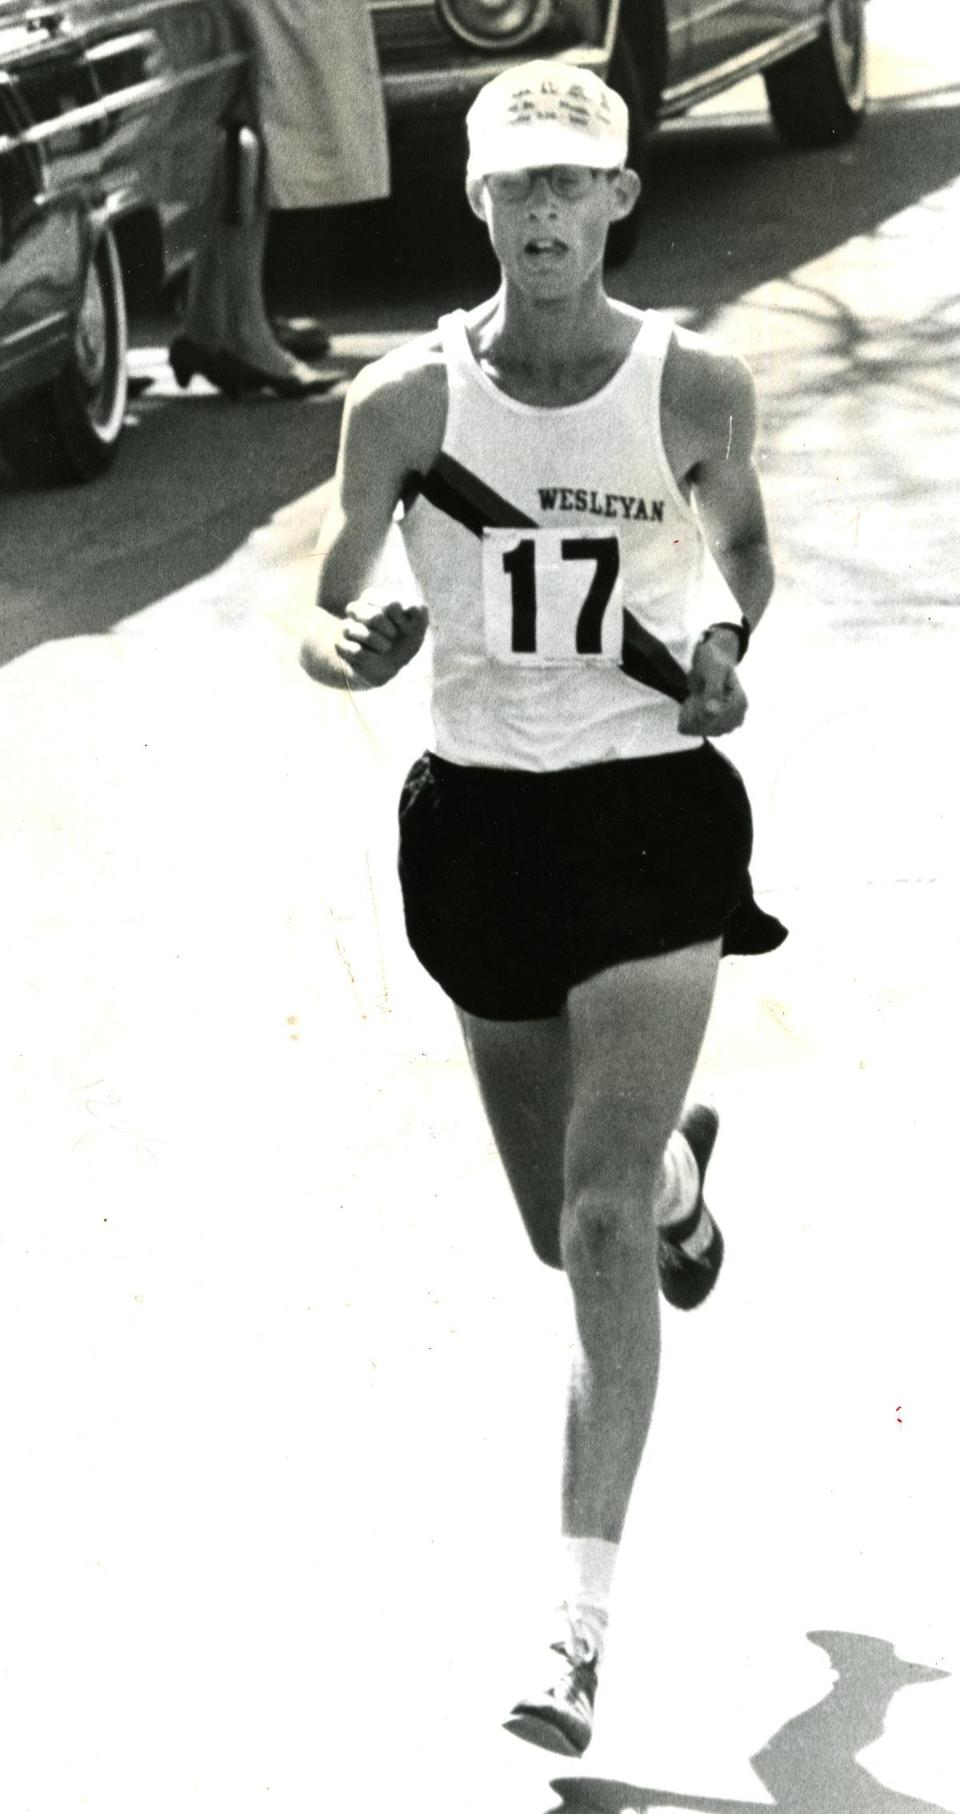 Amby Burfoot finished the 1968 race in 2:22:17.